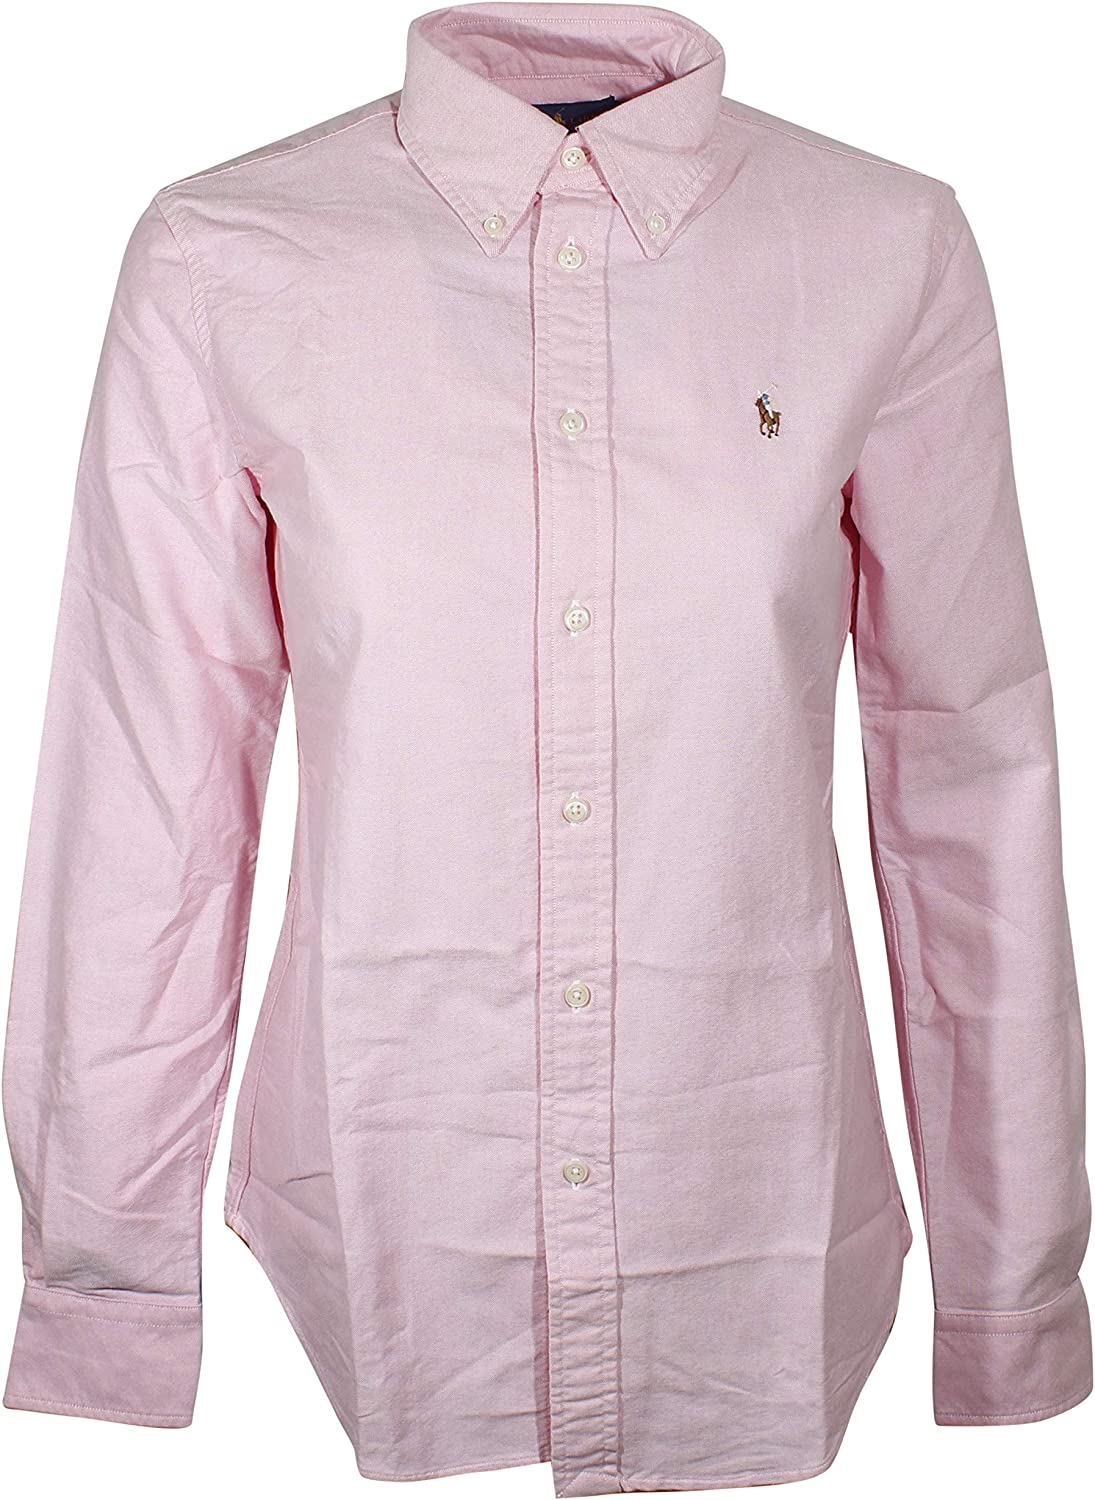 Polo Ralph Lauren Women's Slim Fit Long Sleeve Shirt Buttondown